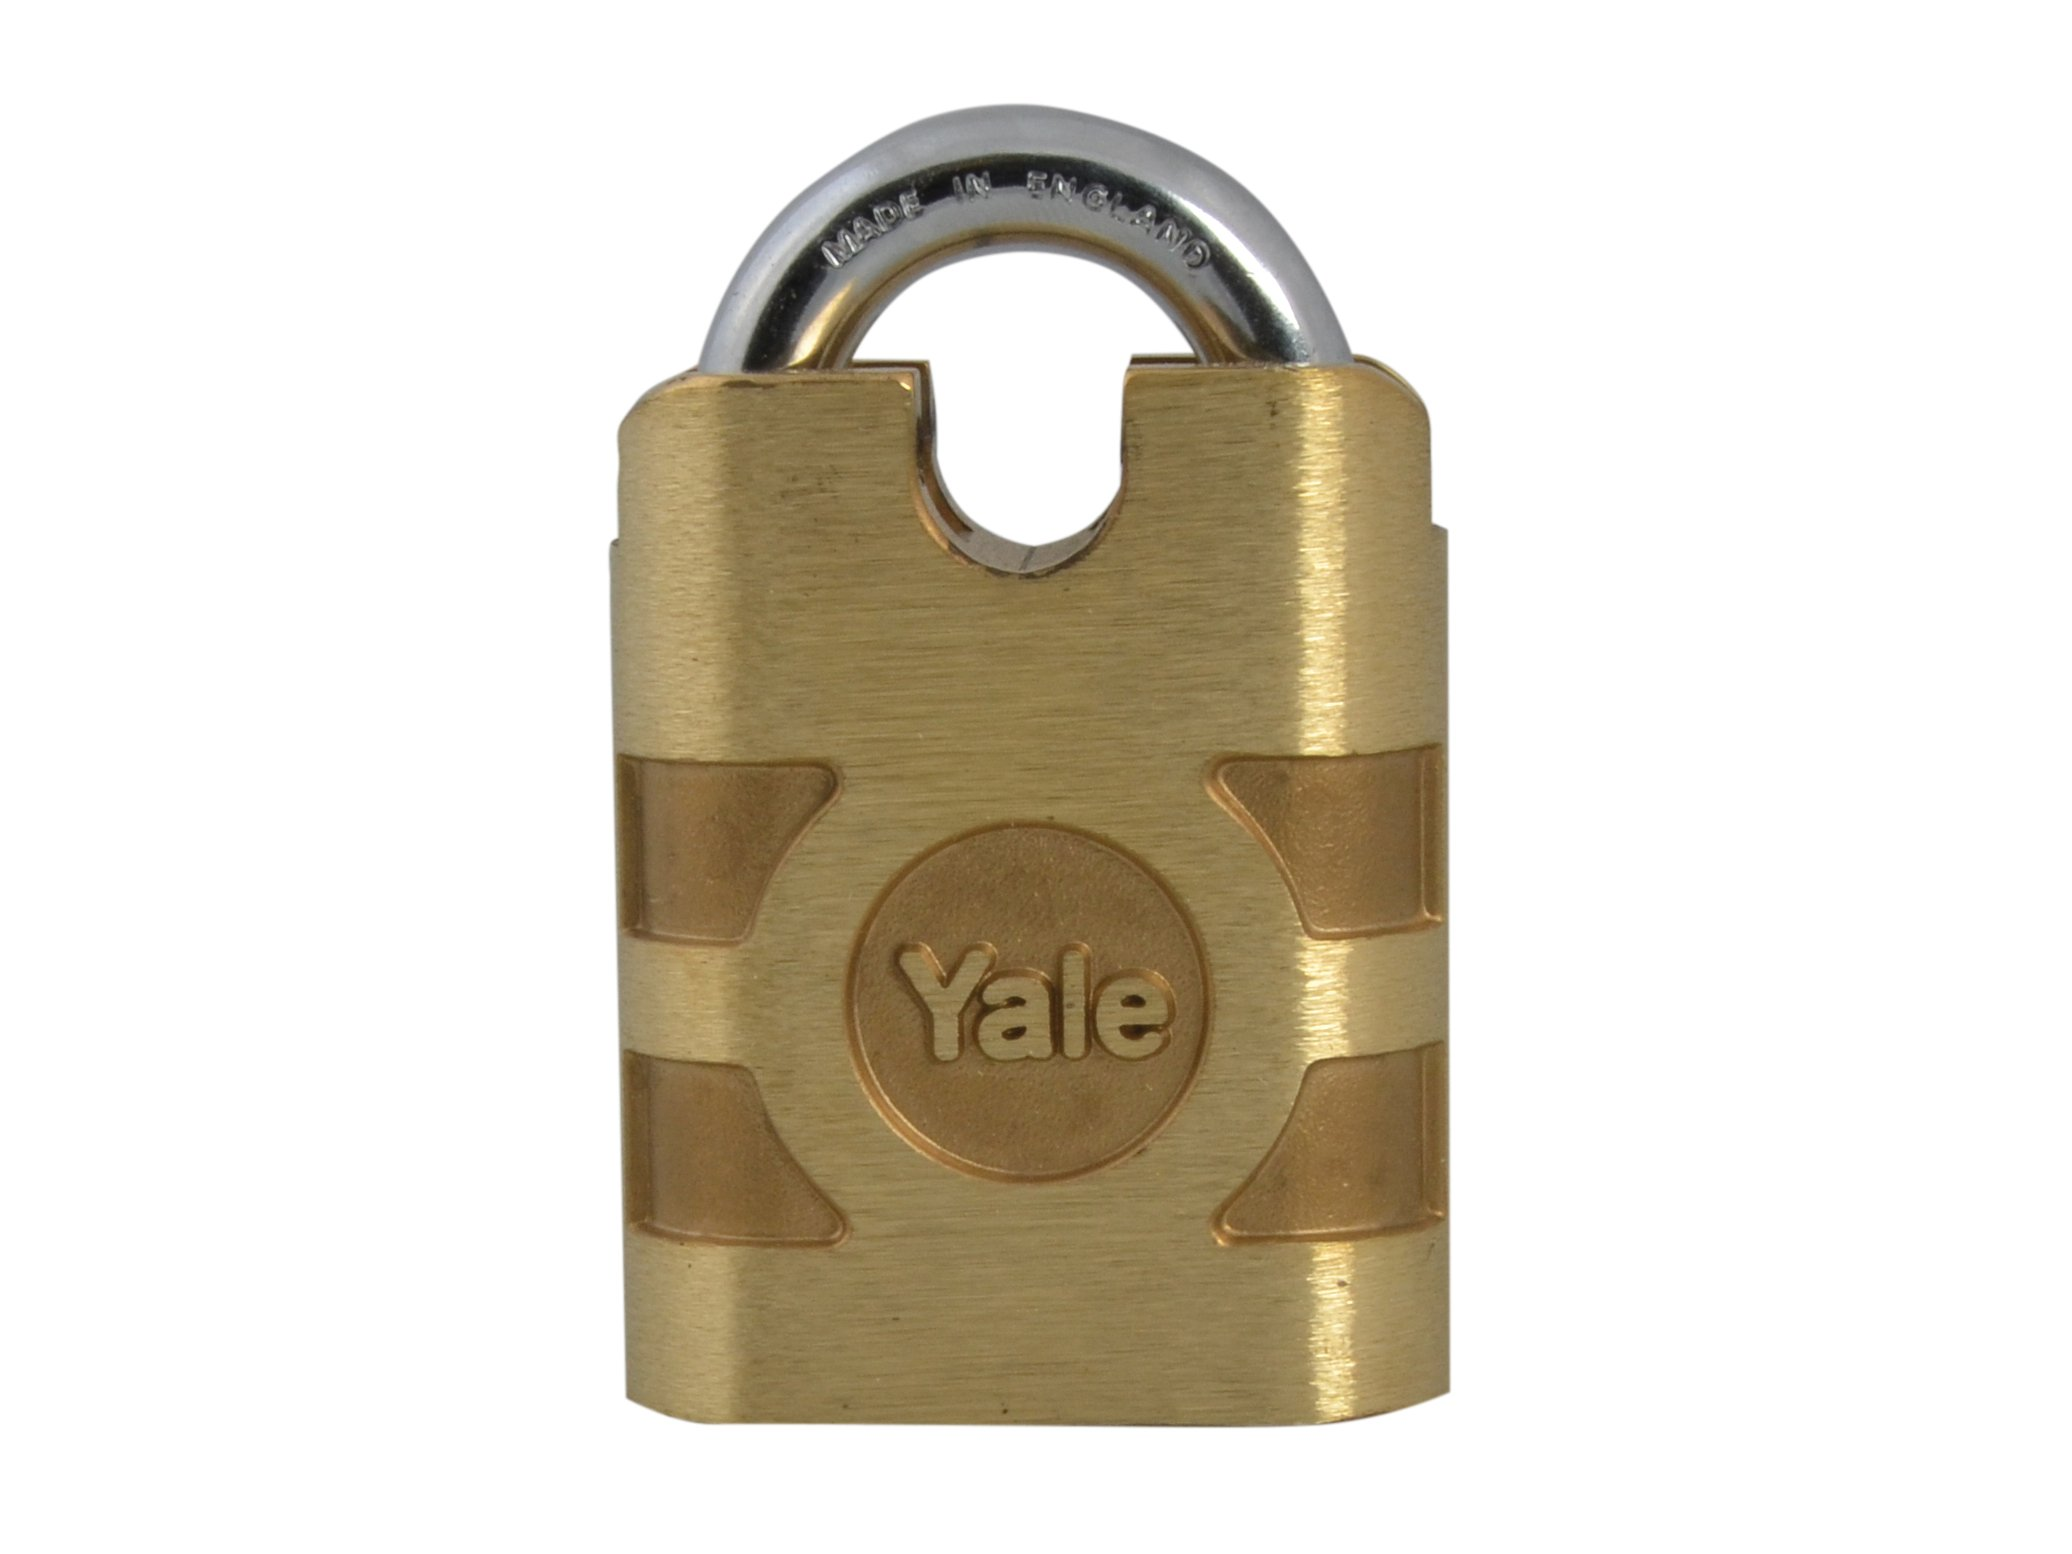 Yale Locks L850 54mm Bronze Weatherproof Padlock Closed Shackle Keyed Alike by Yale Locks